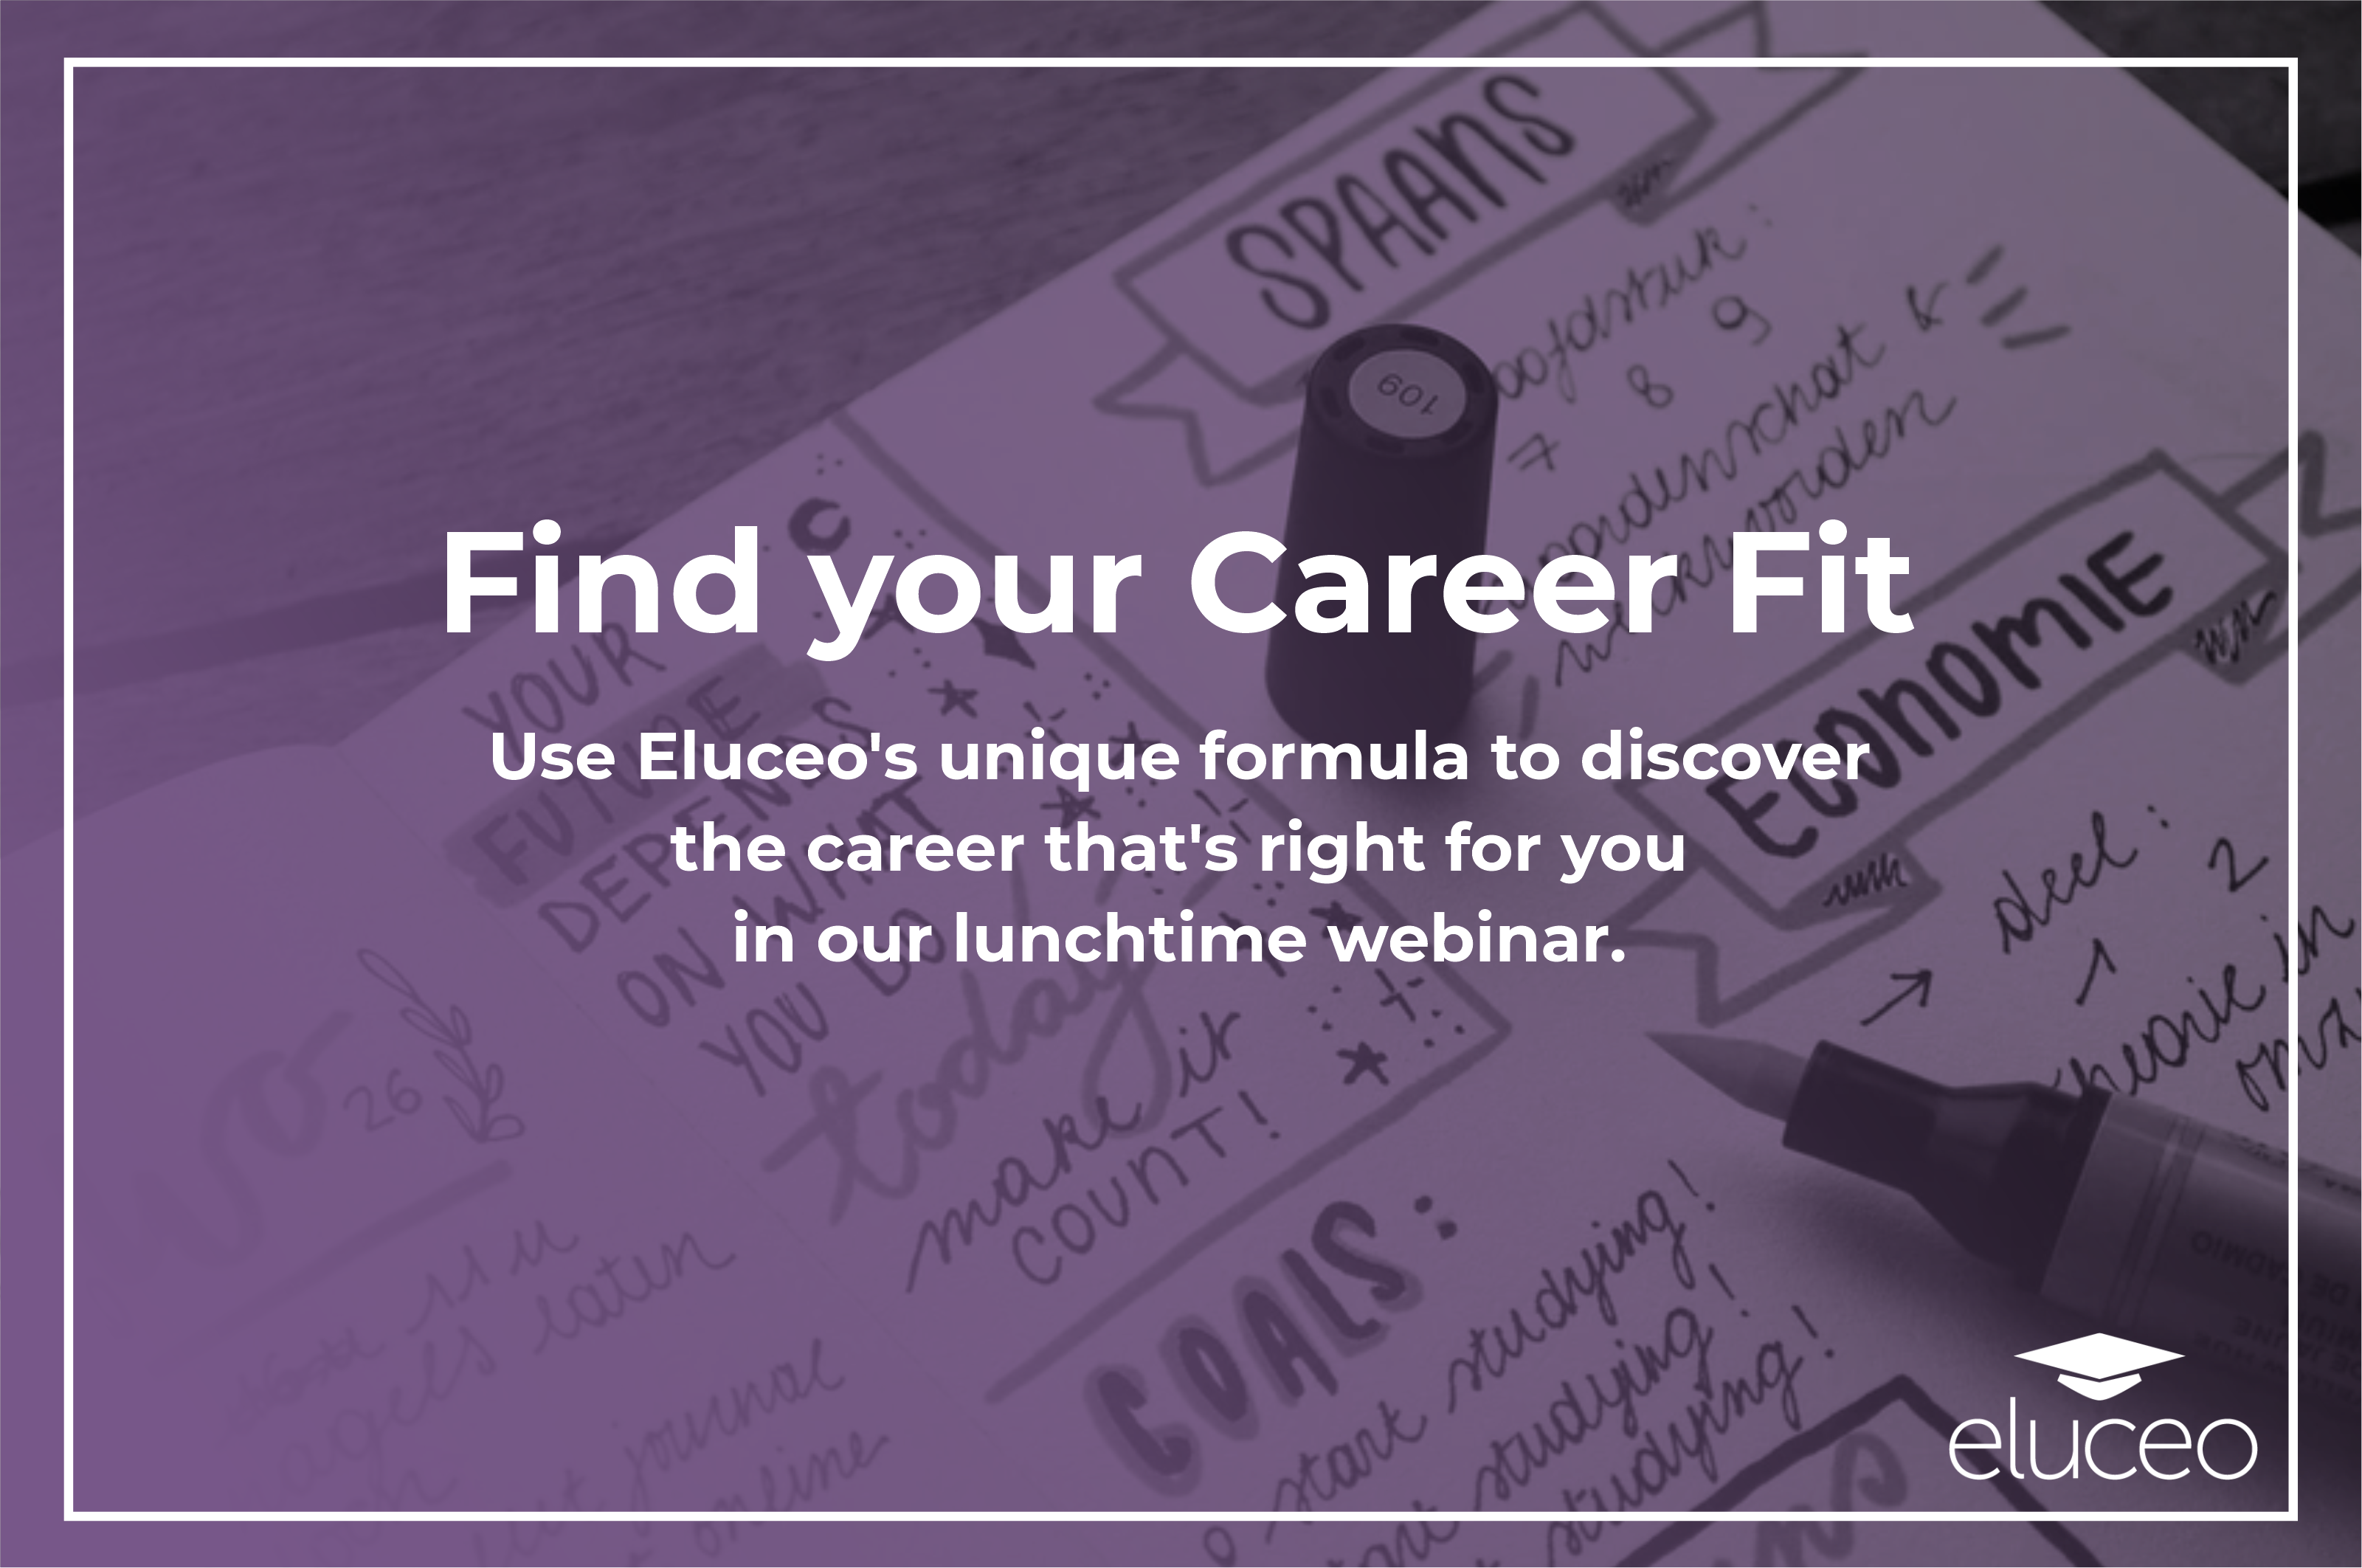 Find Your Career Fit